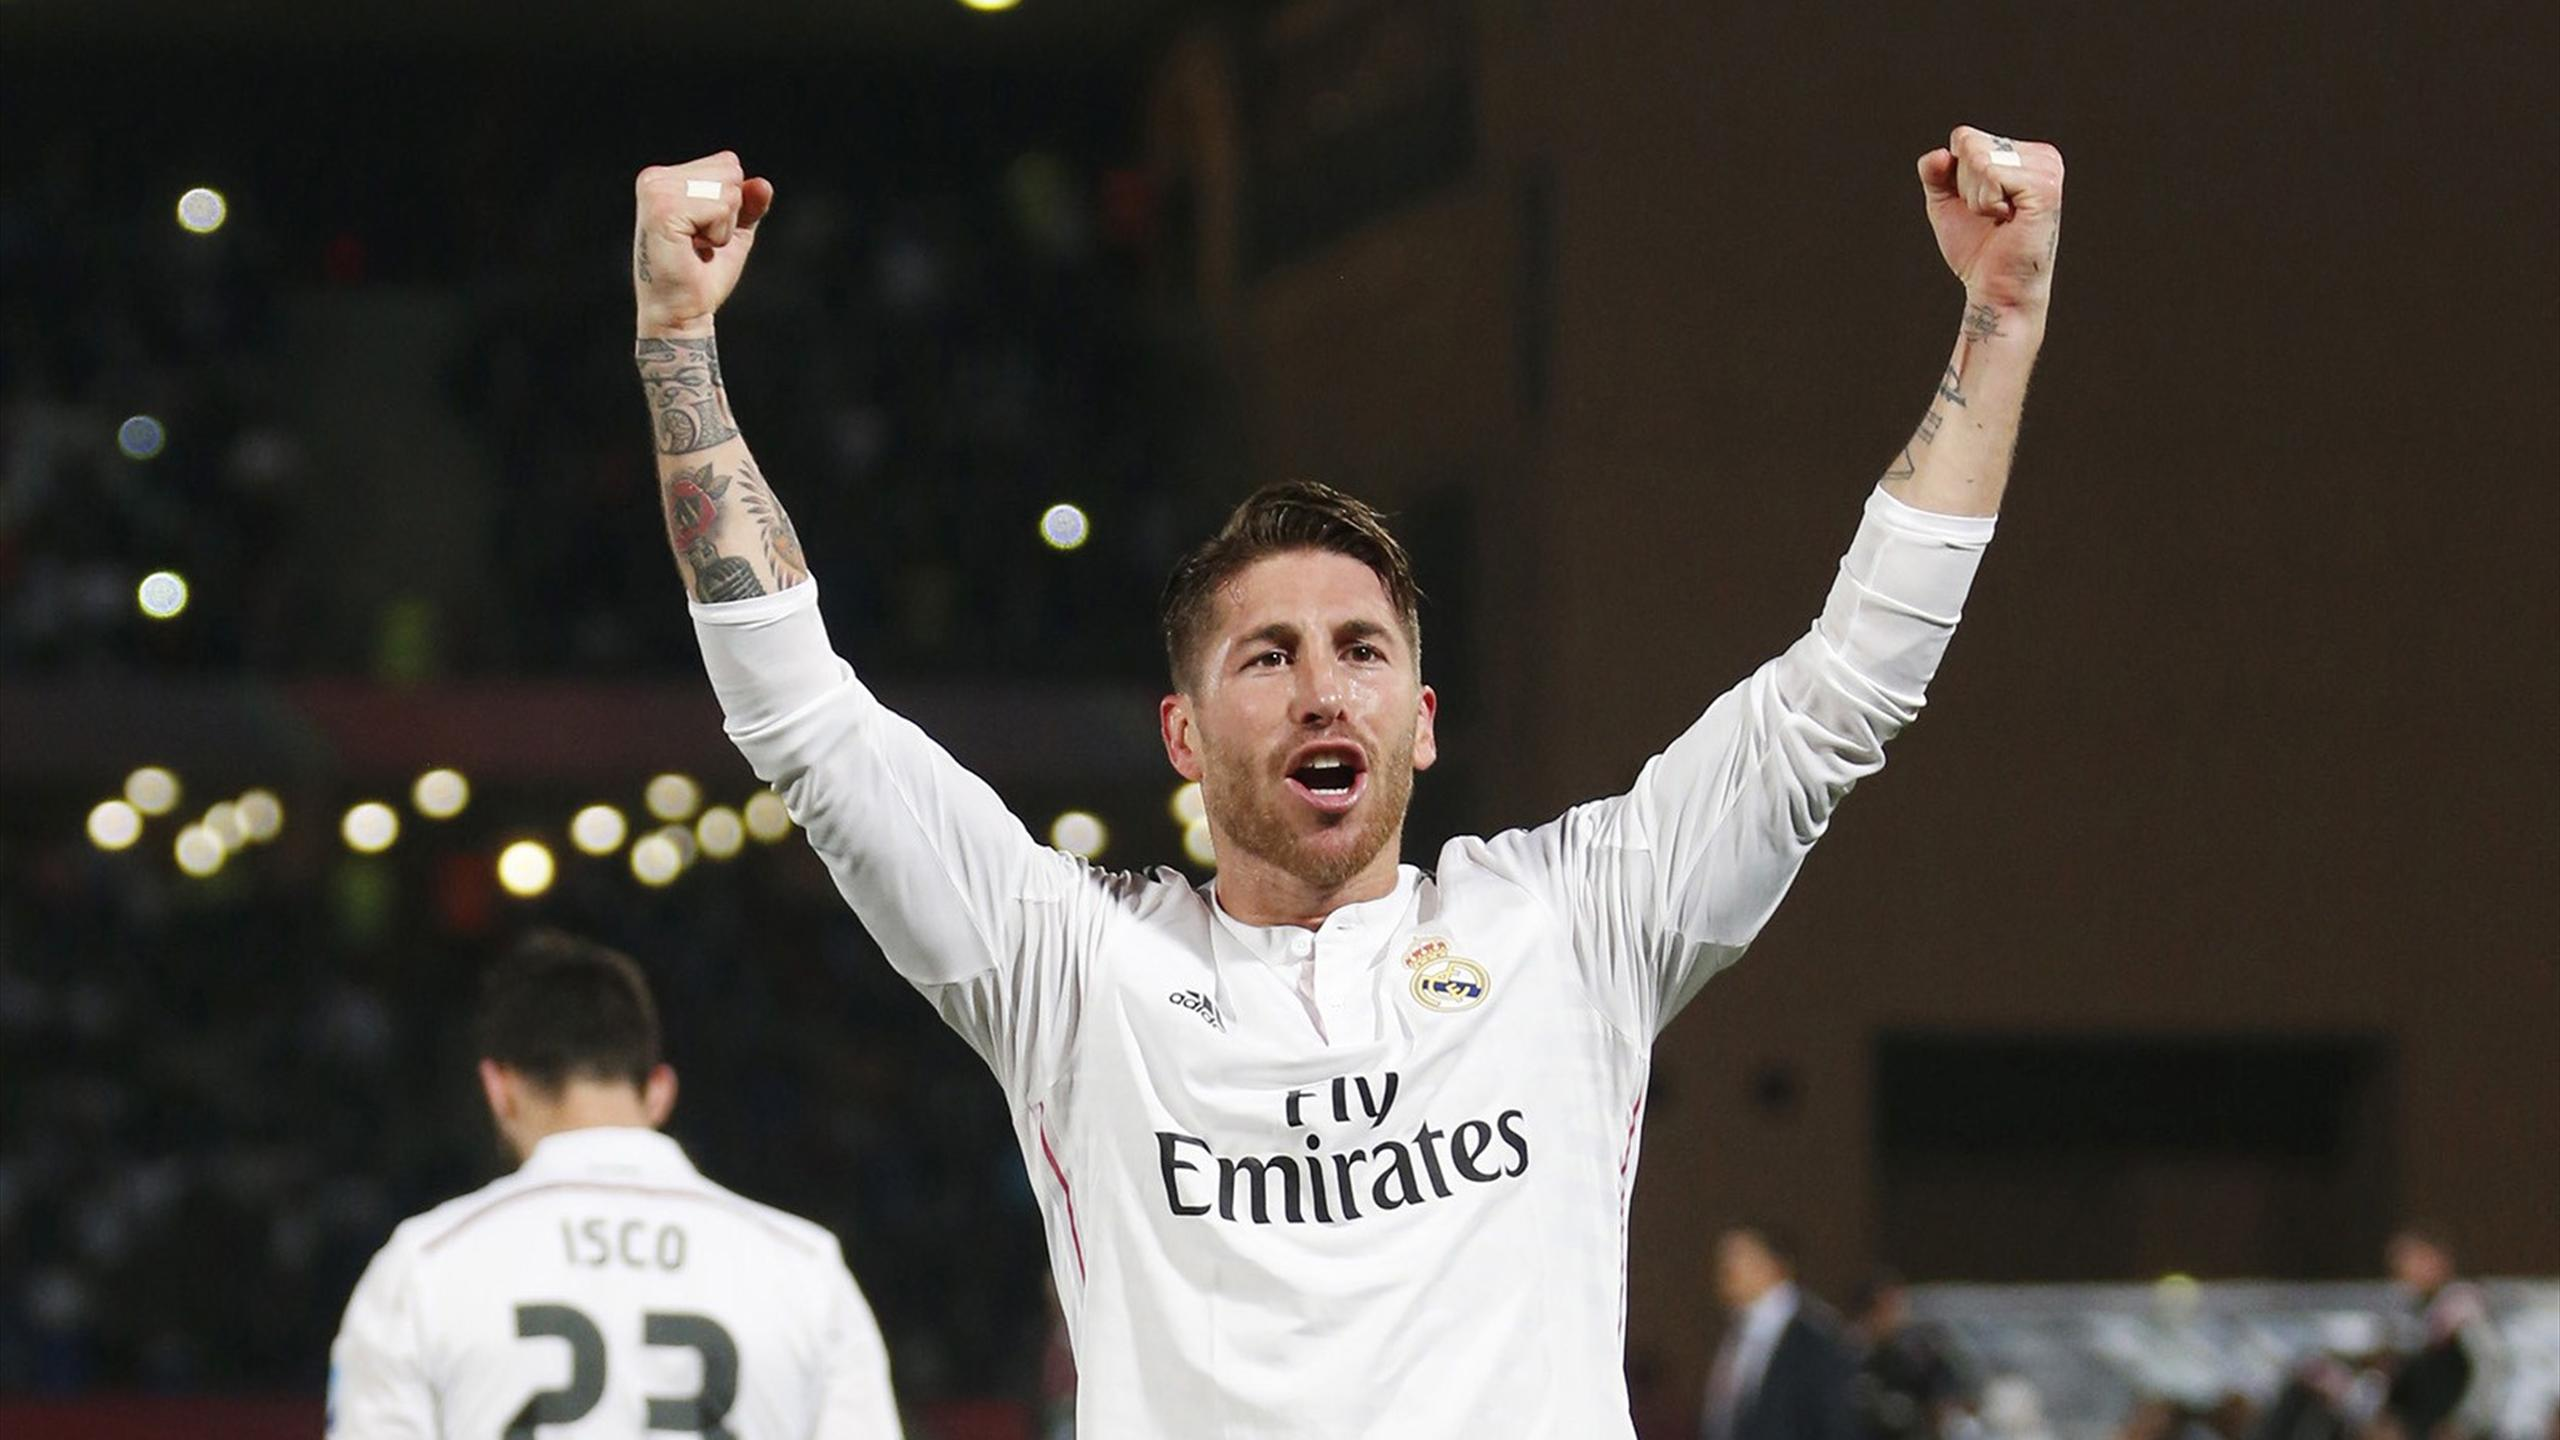 Sergio Ramos of Real Madrid celebrates after scoring against Mexico's Cruz Azul